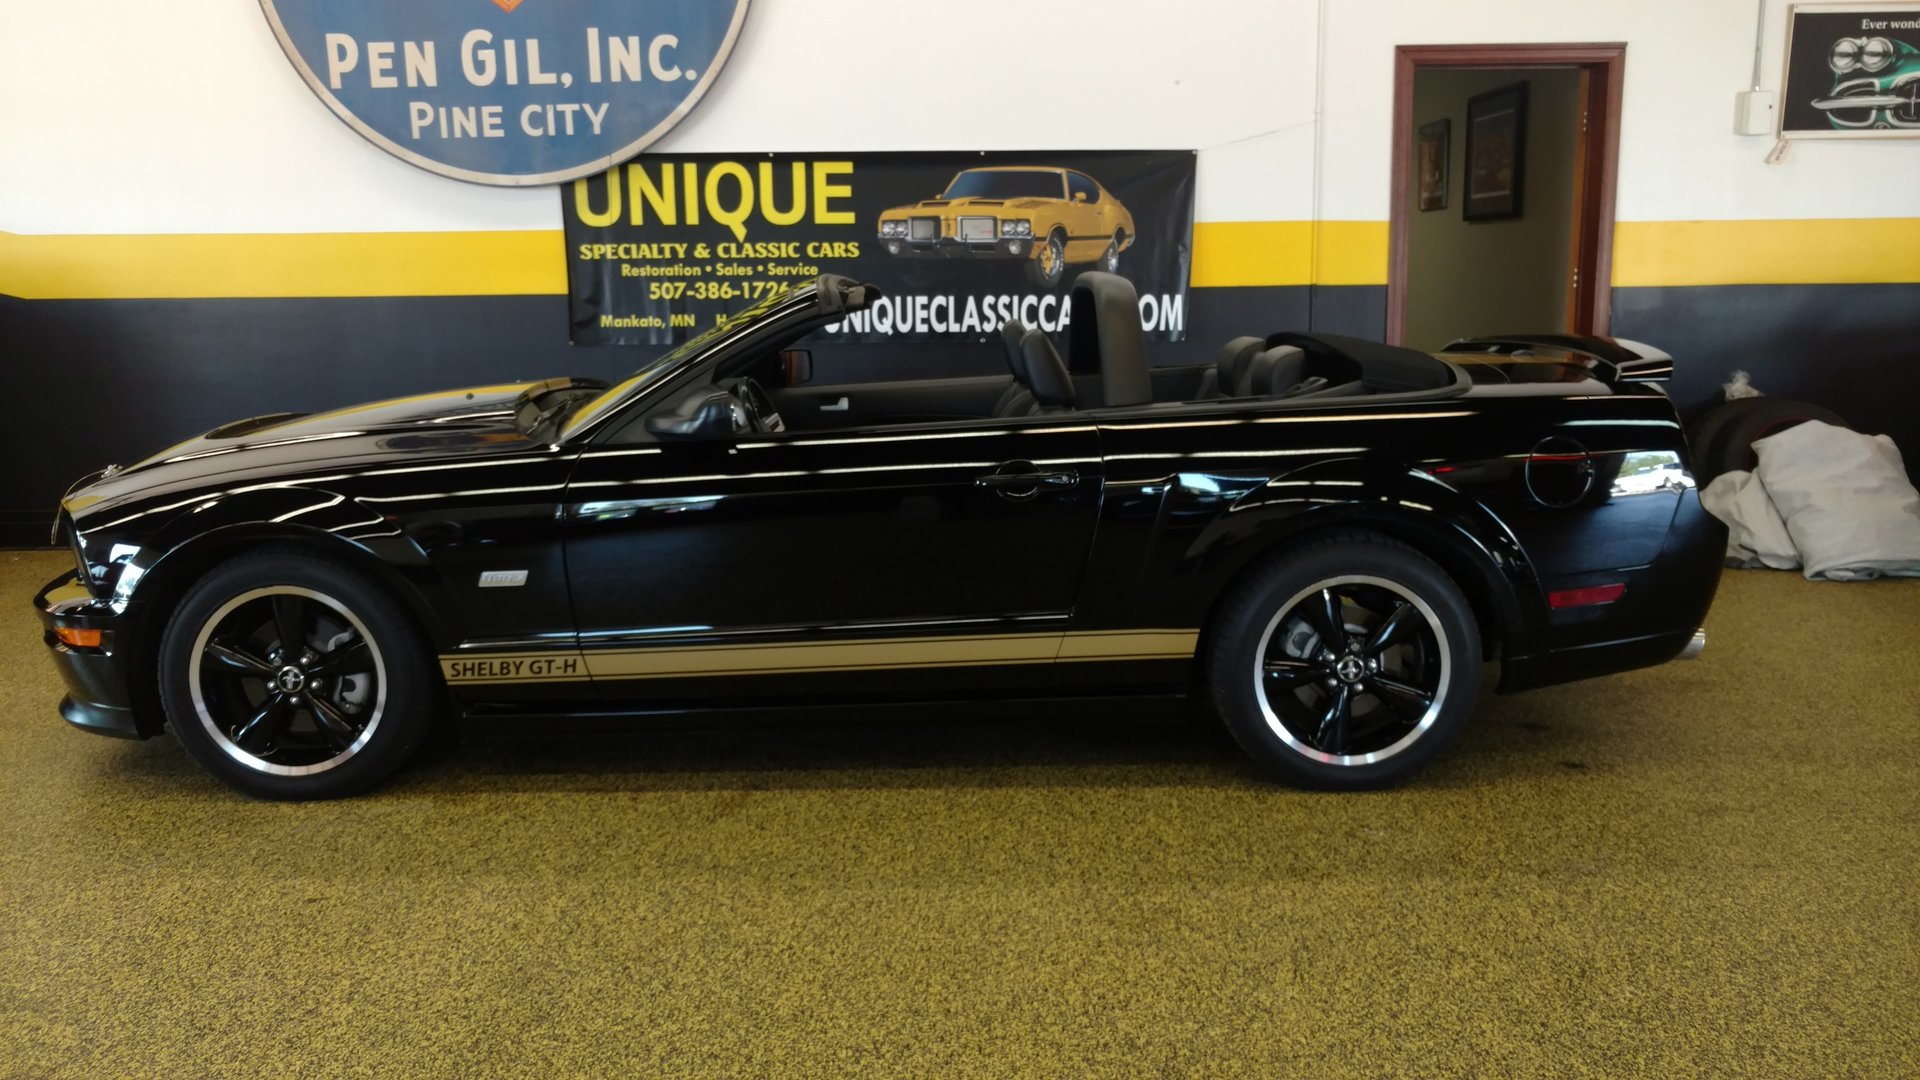 Hertz Monthly Rental >> 2007 Ford Mustang | Unique Specialty & Classics